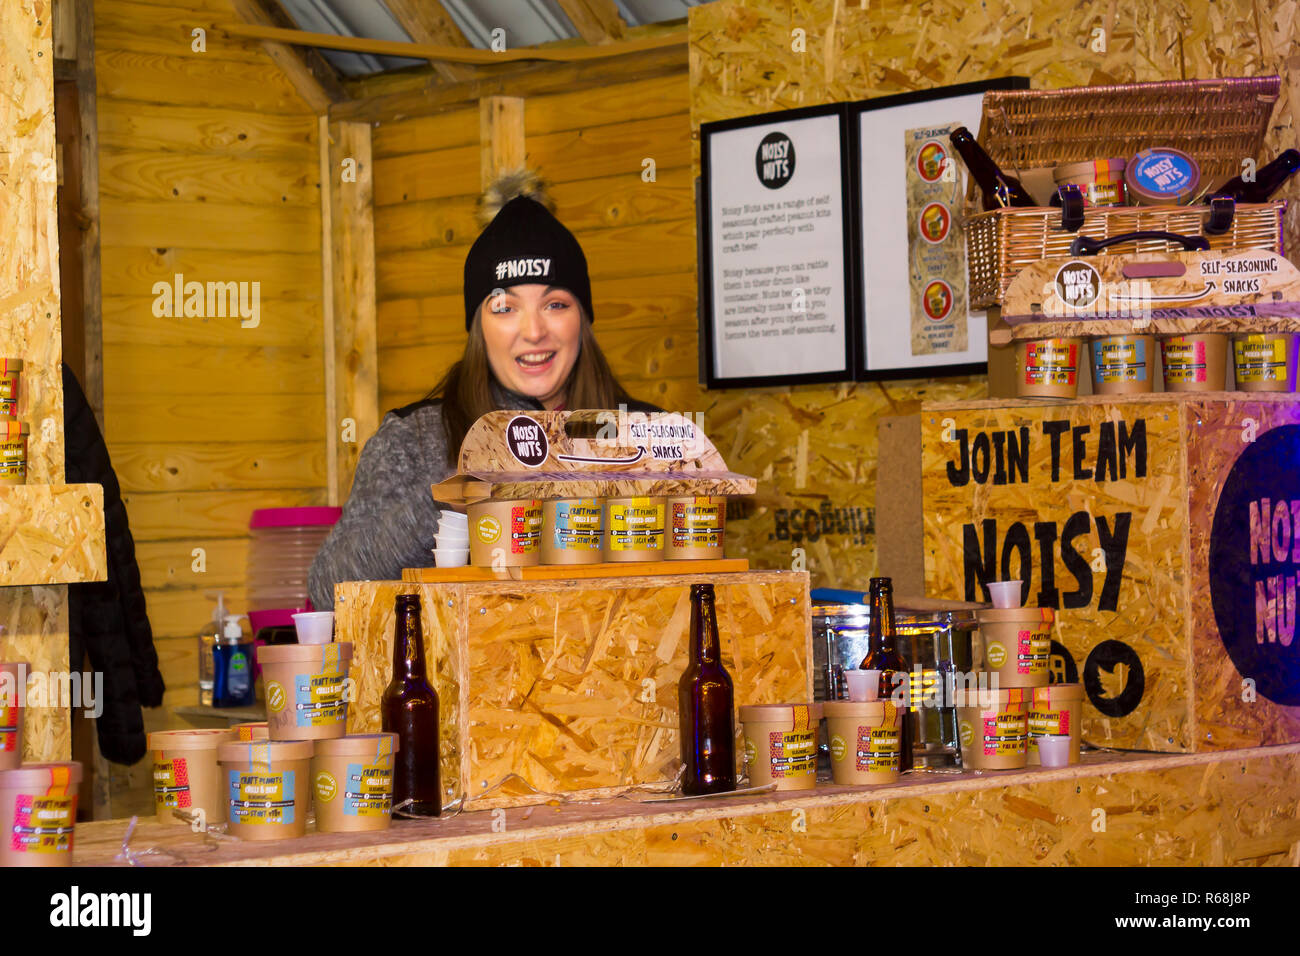 30 November 2018 A young women vendor selling nuts iat the Belfast Christmas Fair in Northern Ireland. The fair is now a popular annual event in the c - Stock Image